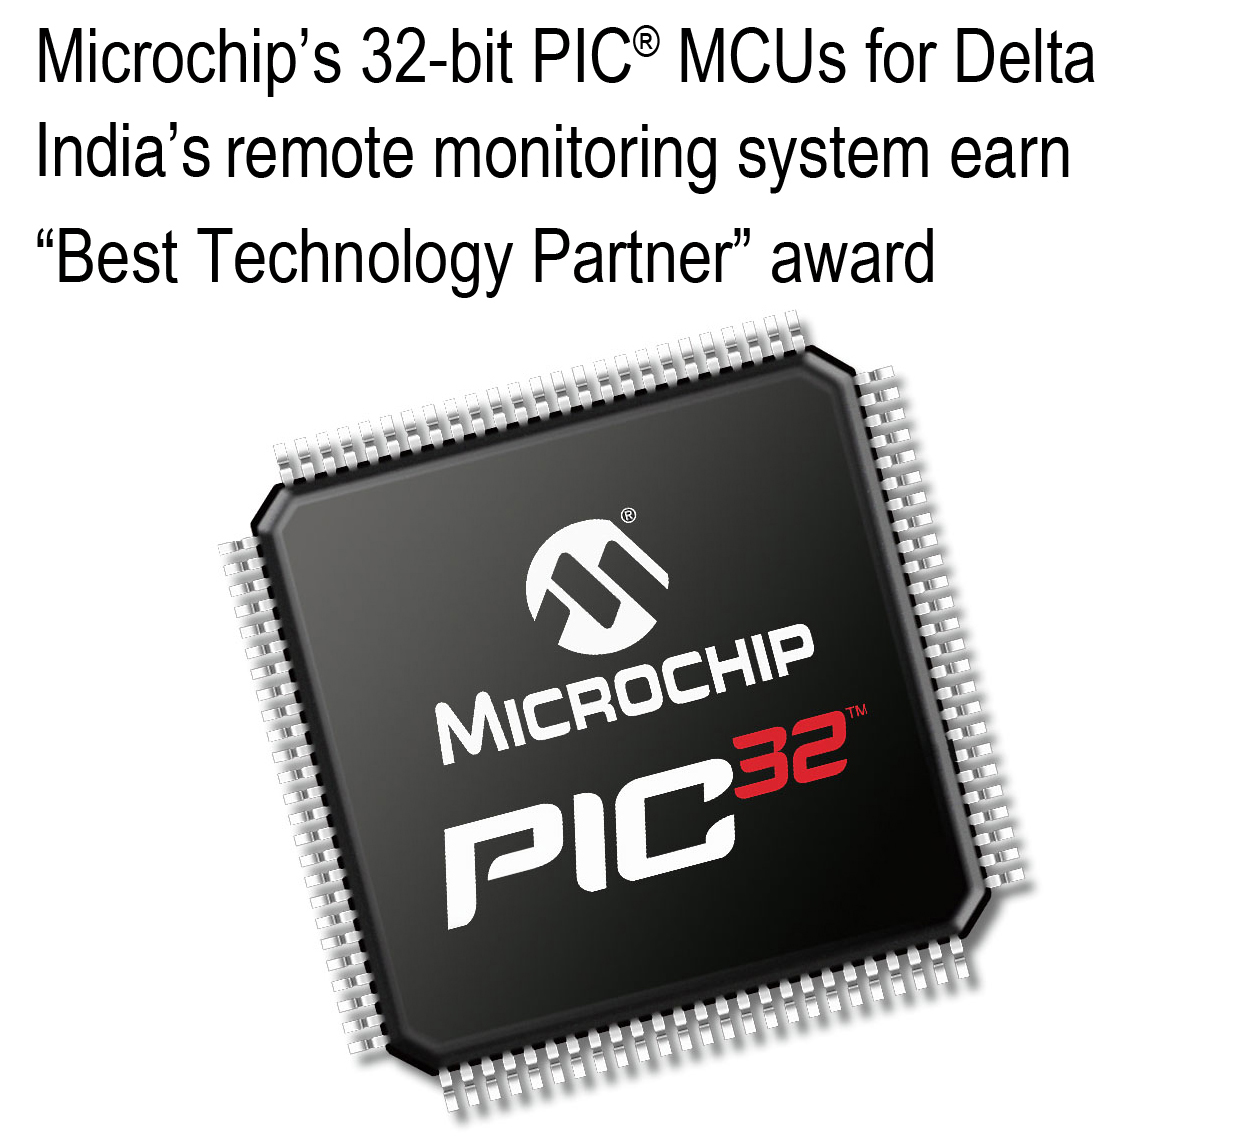 Microchip named Best Technology Partner 2013 by Delta India, For Co-Developing Industry-First Telecom Monitoring System in India